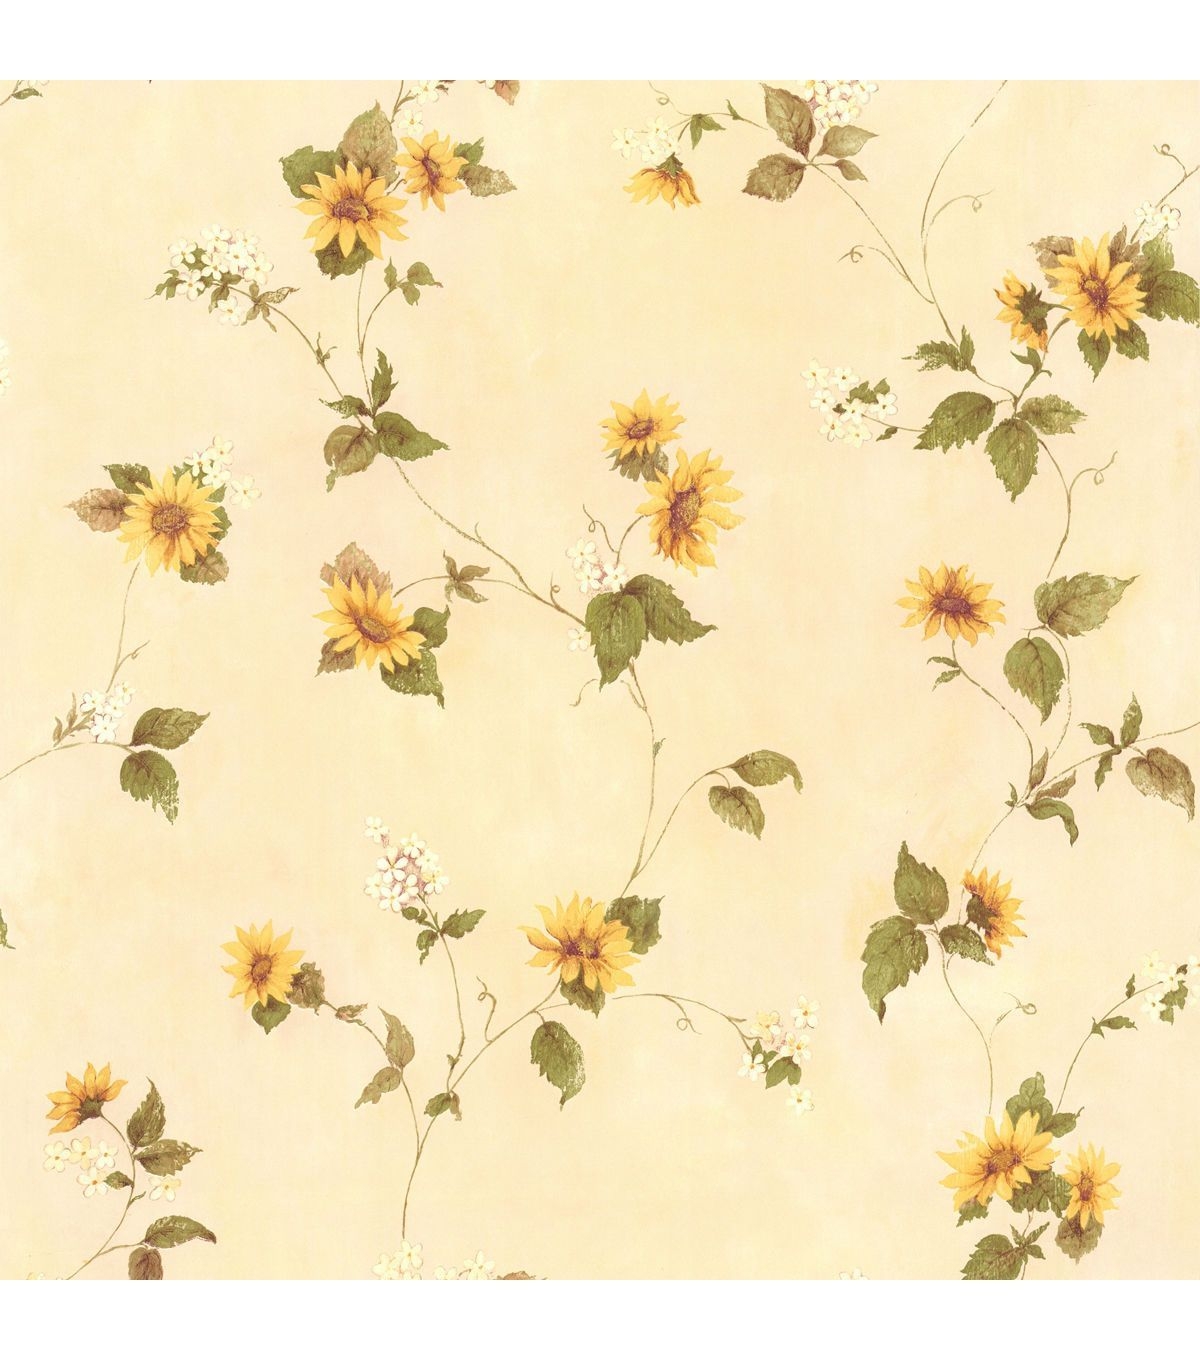 August Yellow Floral Trail Wallpaper Vintage Floral Wallpapers